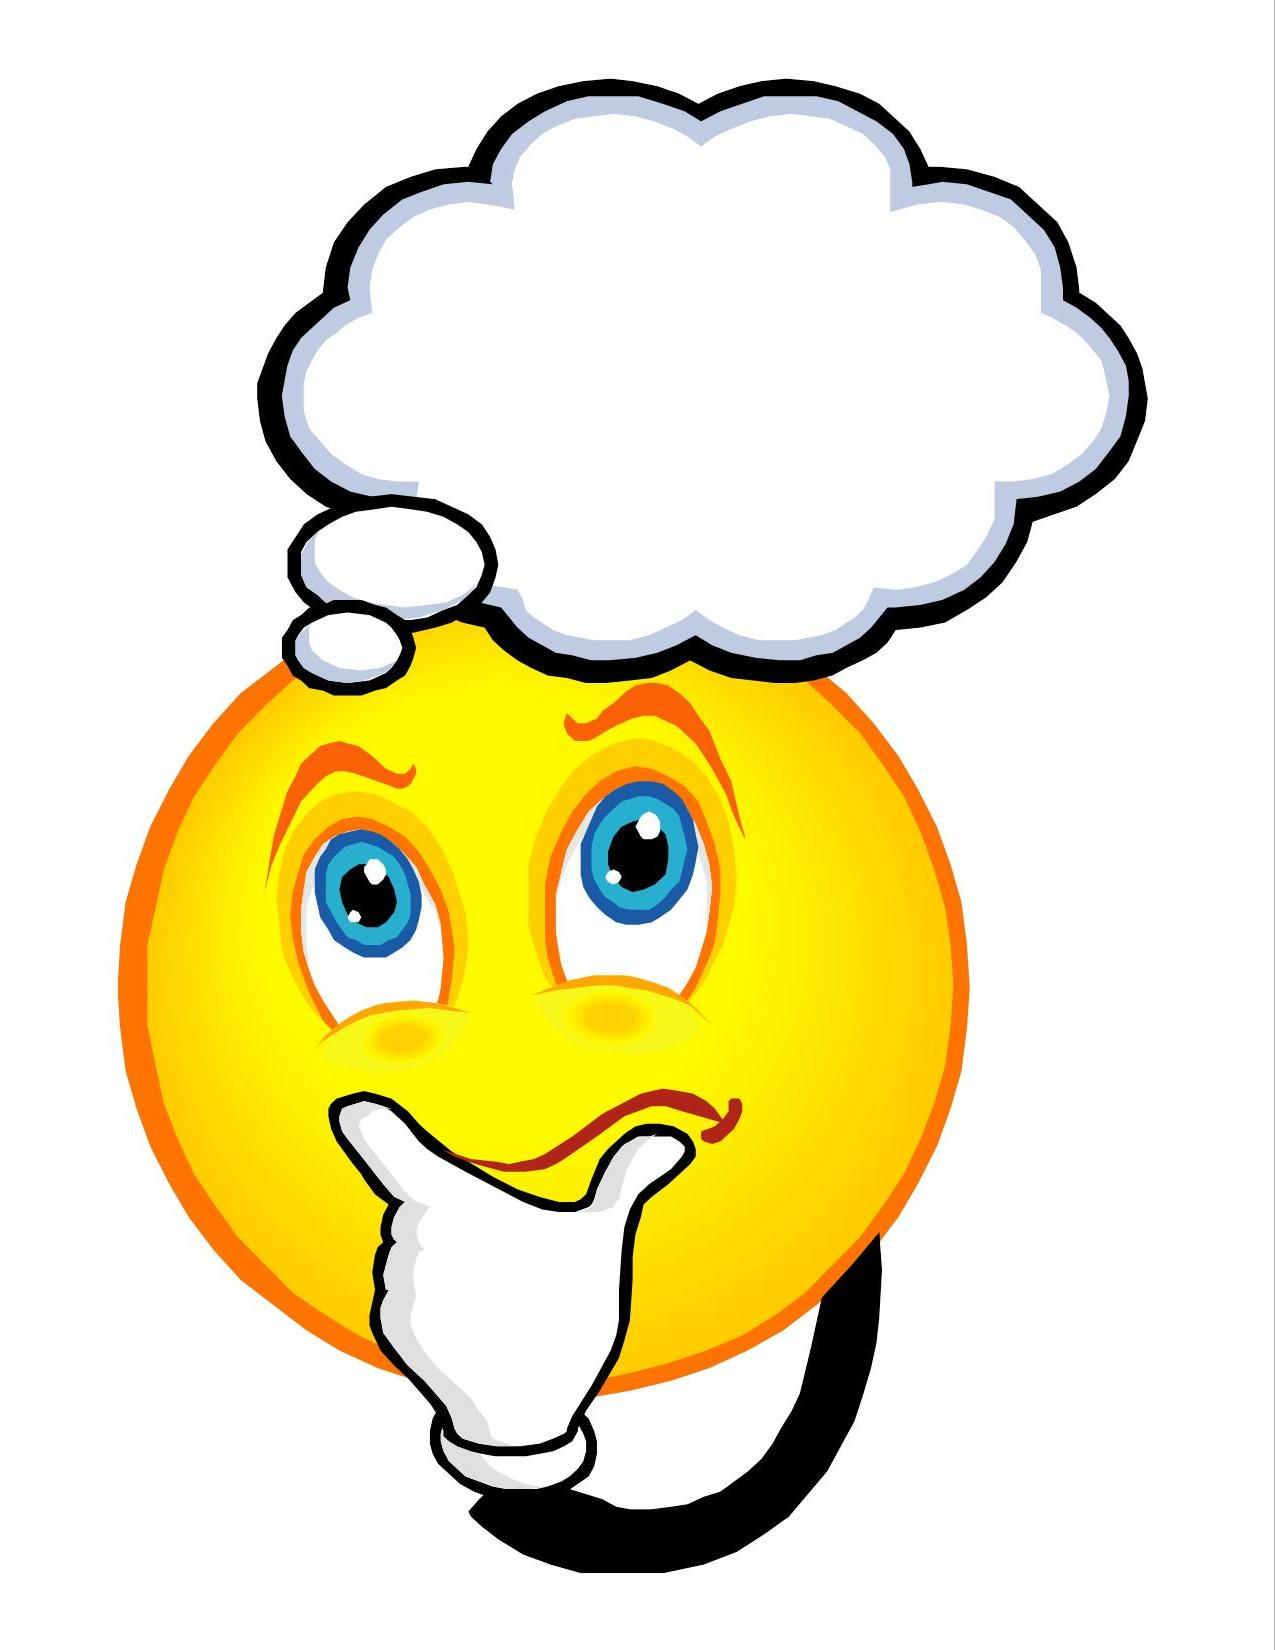 Thinking smiley clipart 6 » Clipart Station.